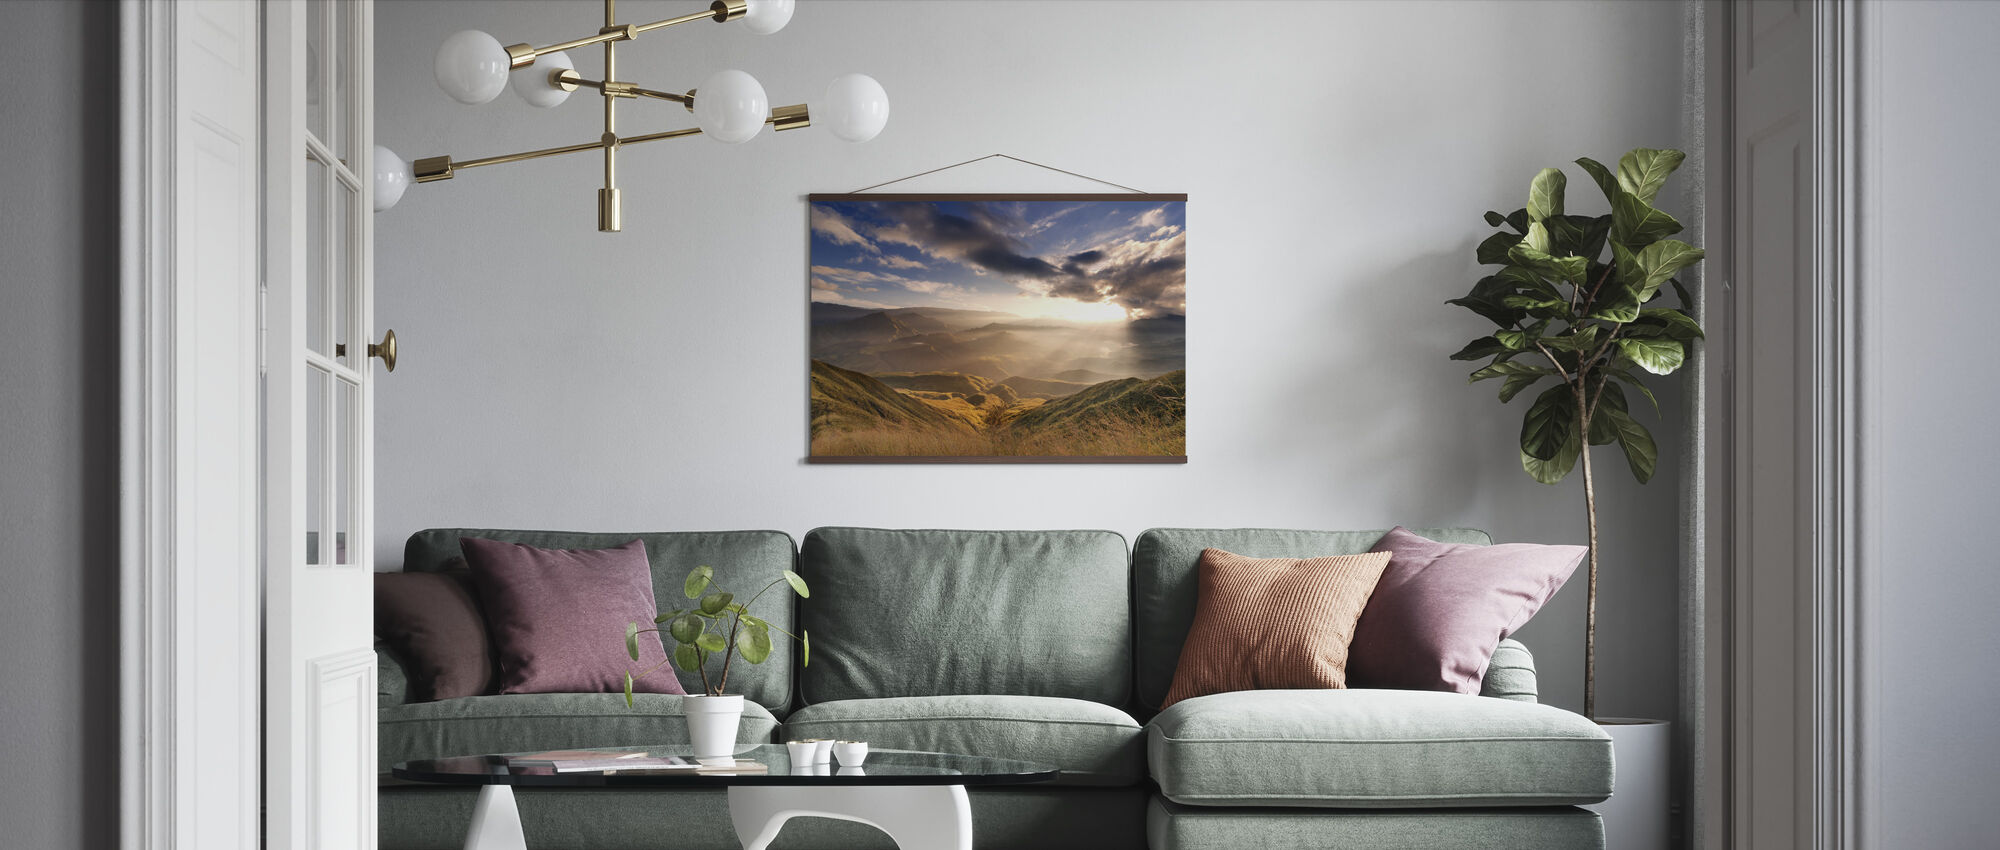 Sunrise Over Ridges - Poster - Living Room